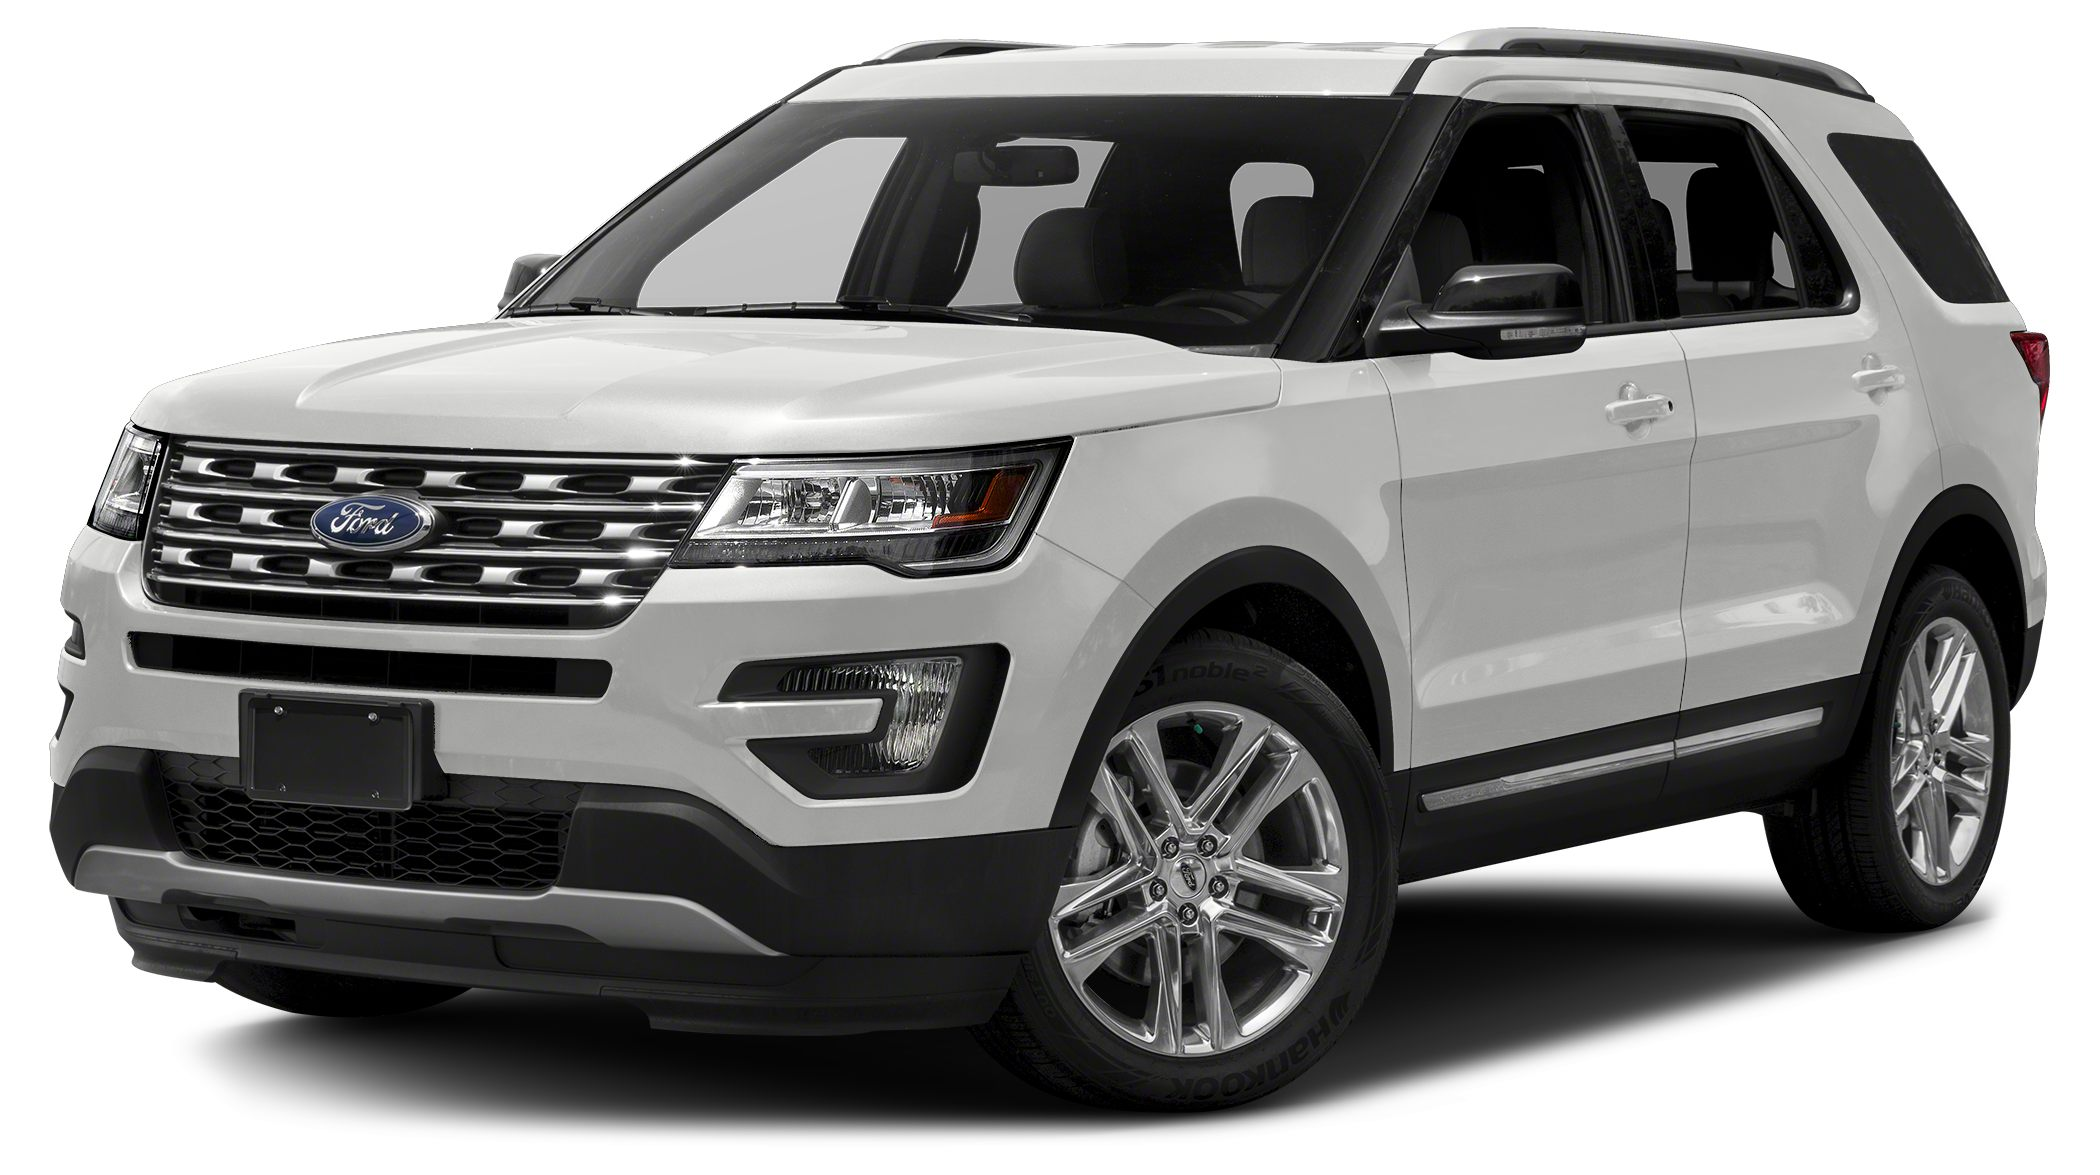 2017 Ford Explorer XLT Price includes 2000 - Retail Customer Cash Exp 04032017 5917 off M